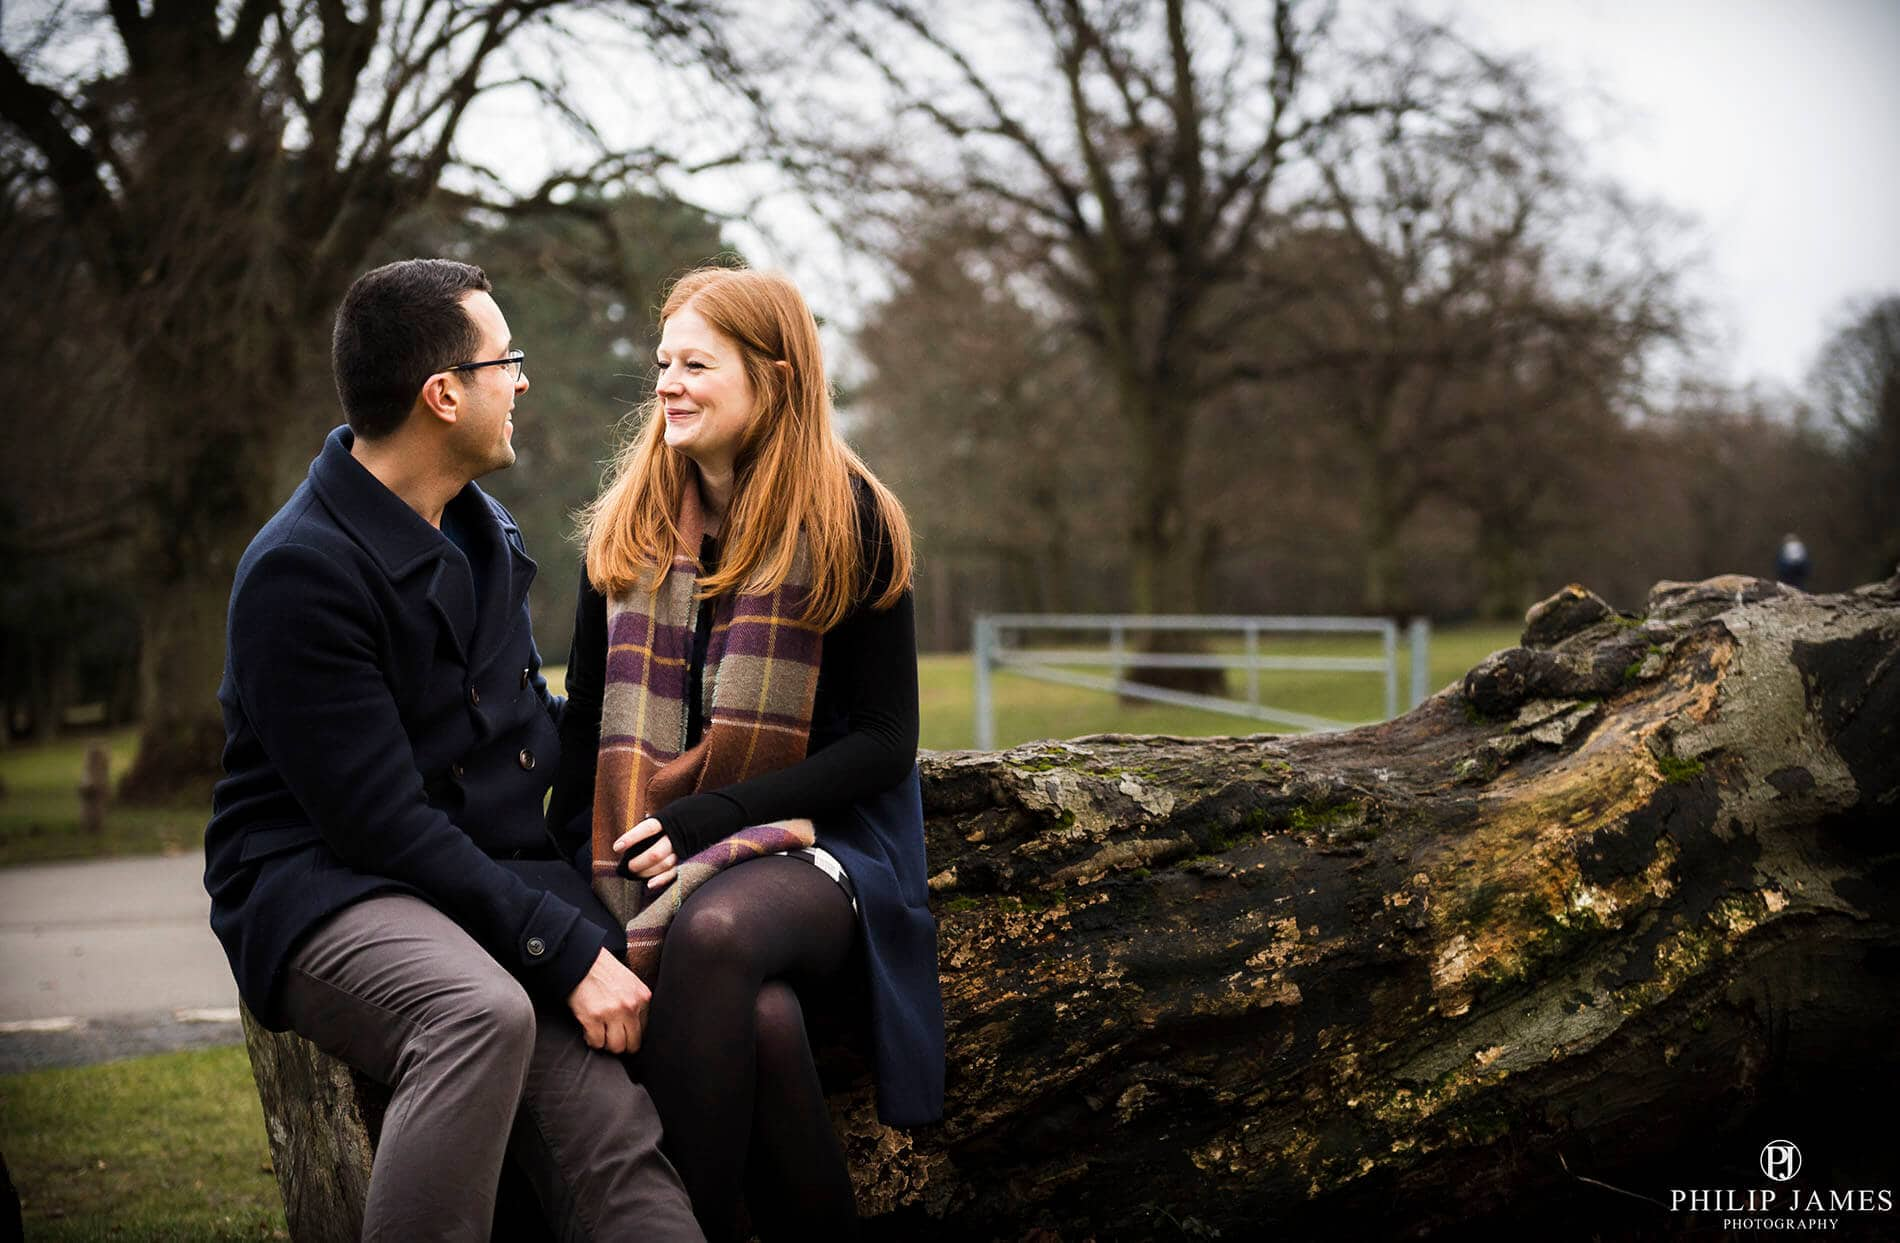 engagement photography | Philip James Photography